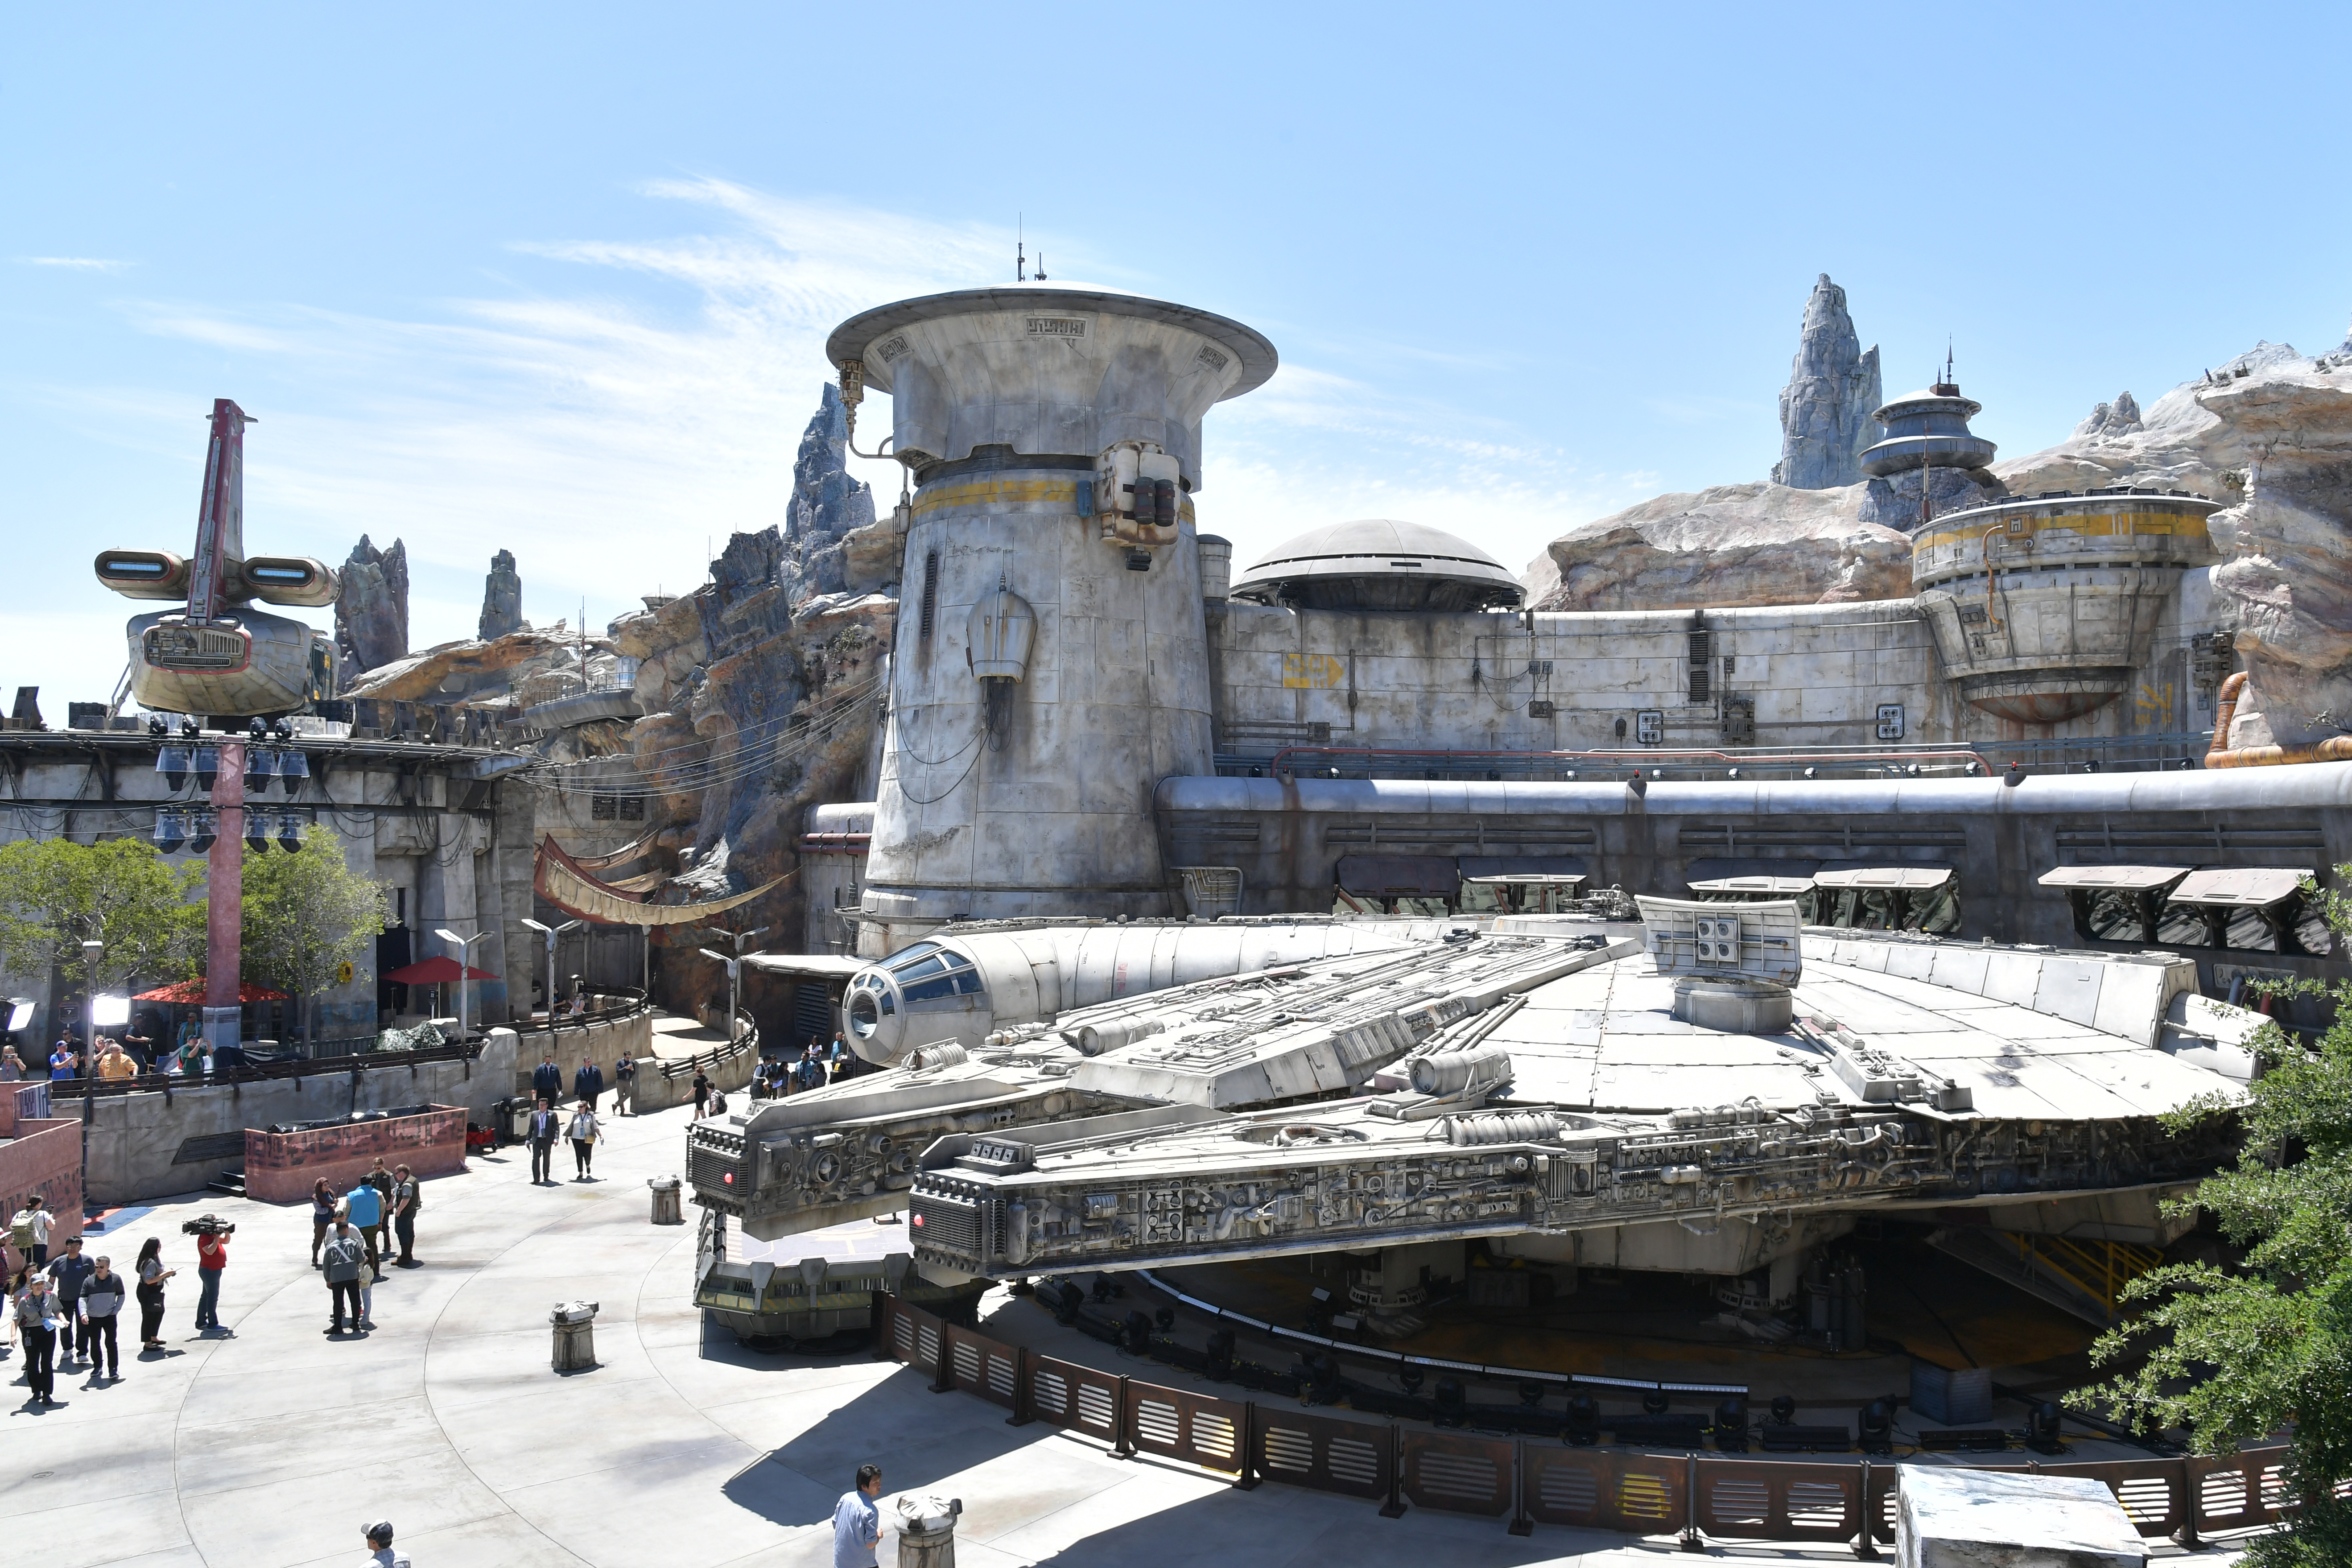 """A large scale replica of the Millennium Falcon from the """"Star Wars"""" movies sits in a large open area of the Disneyland theme park"""